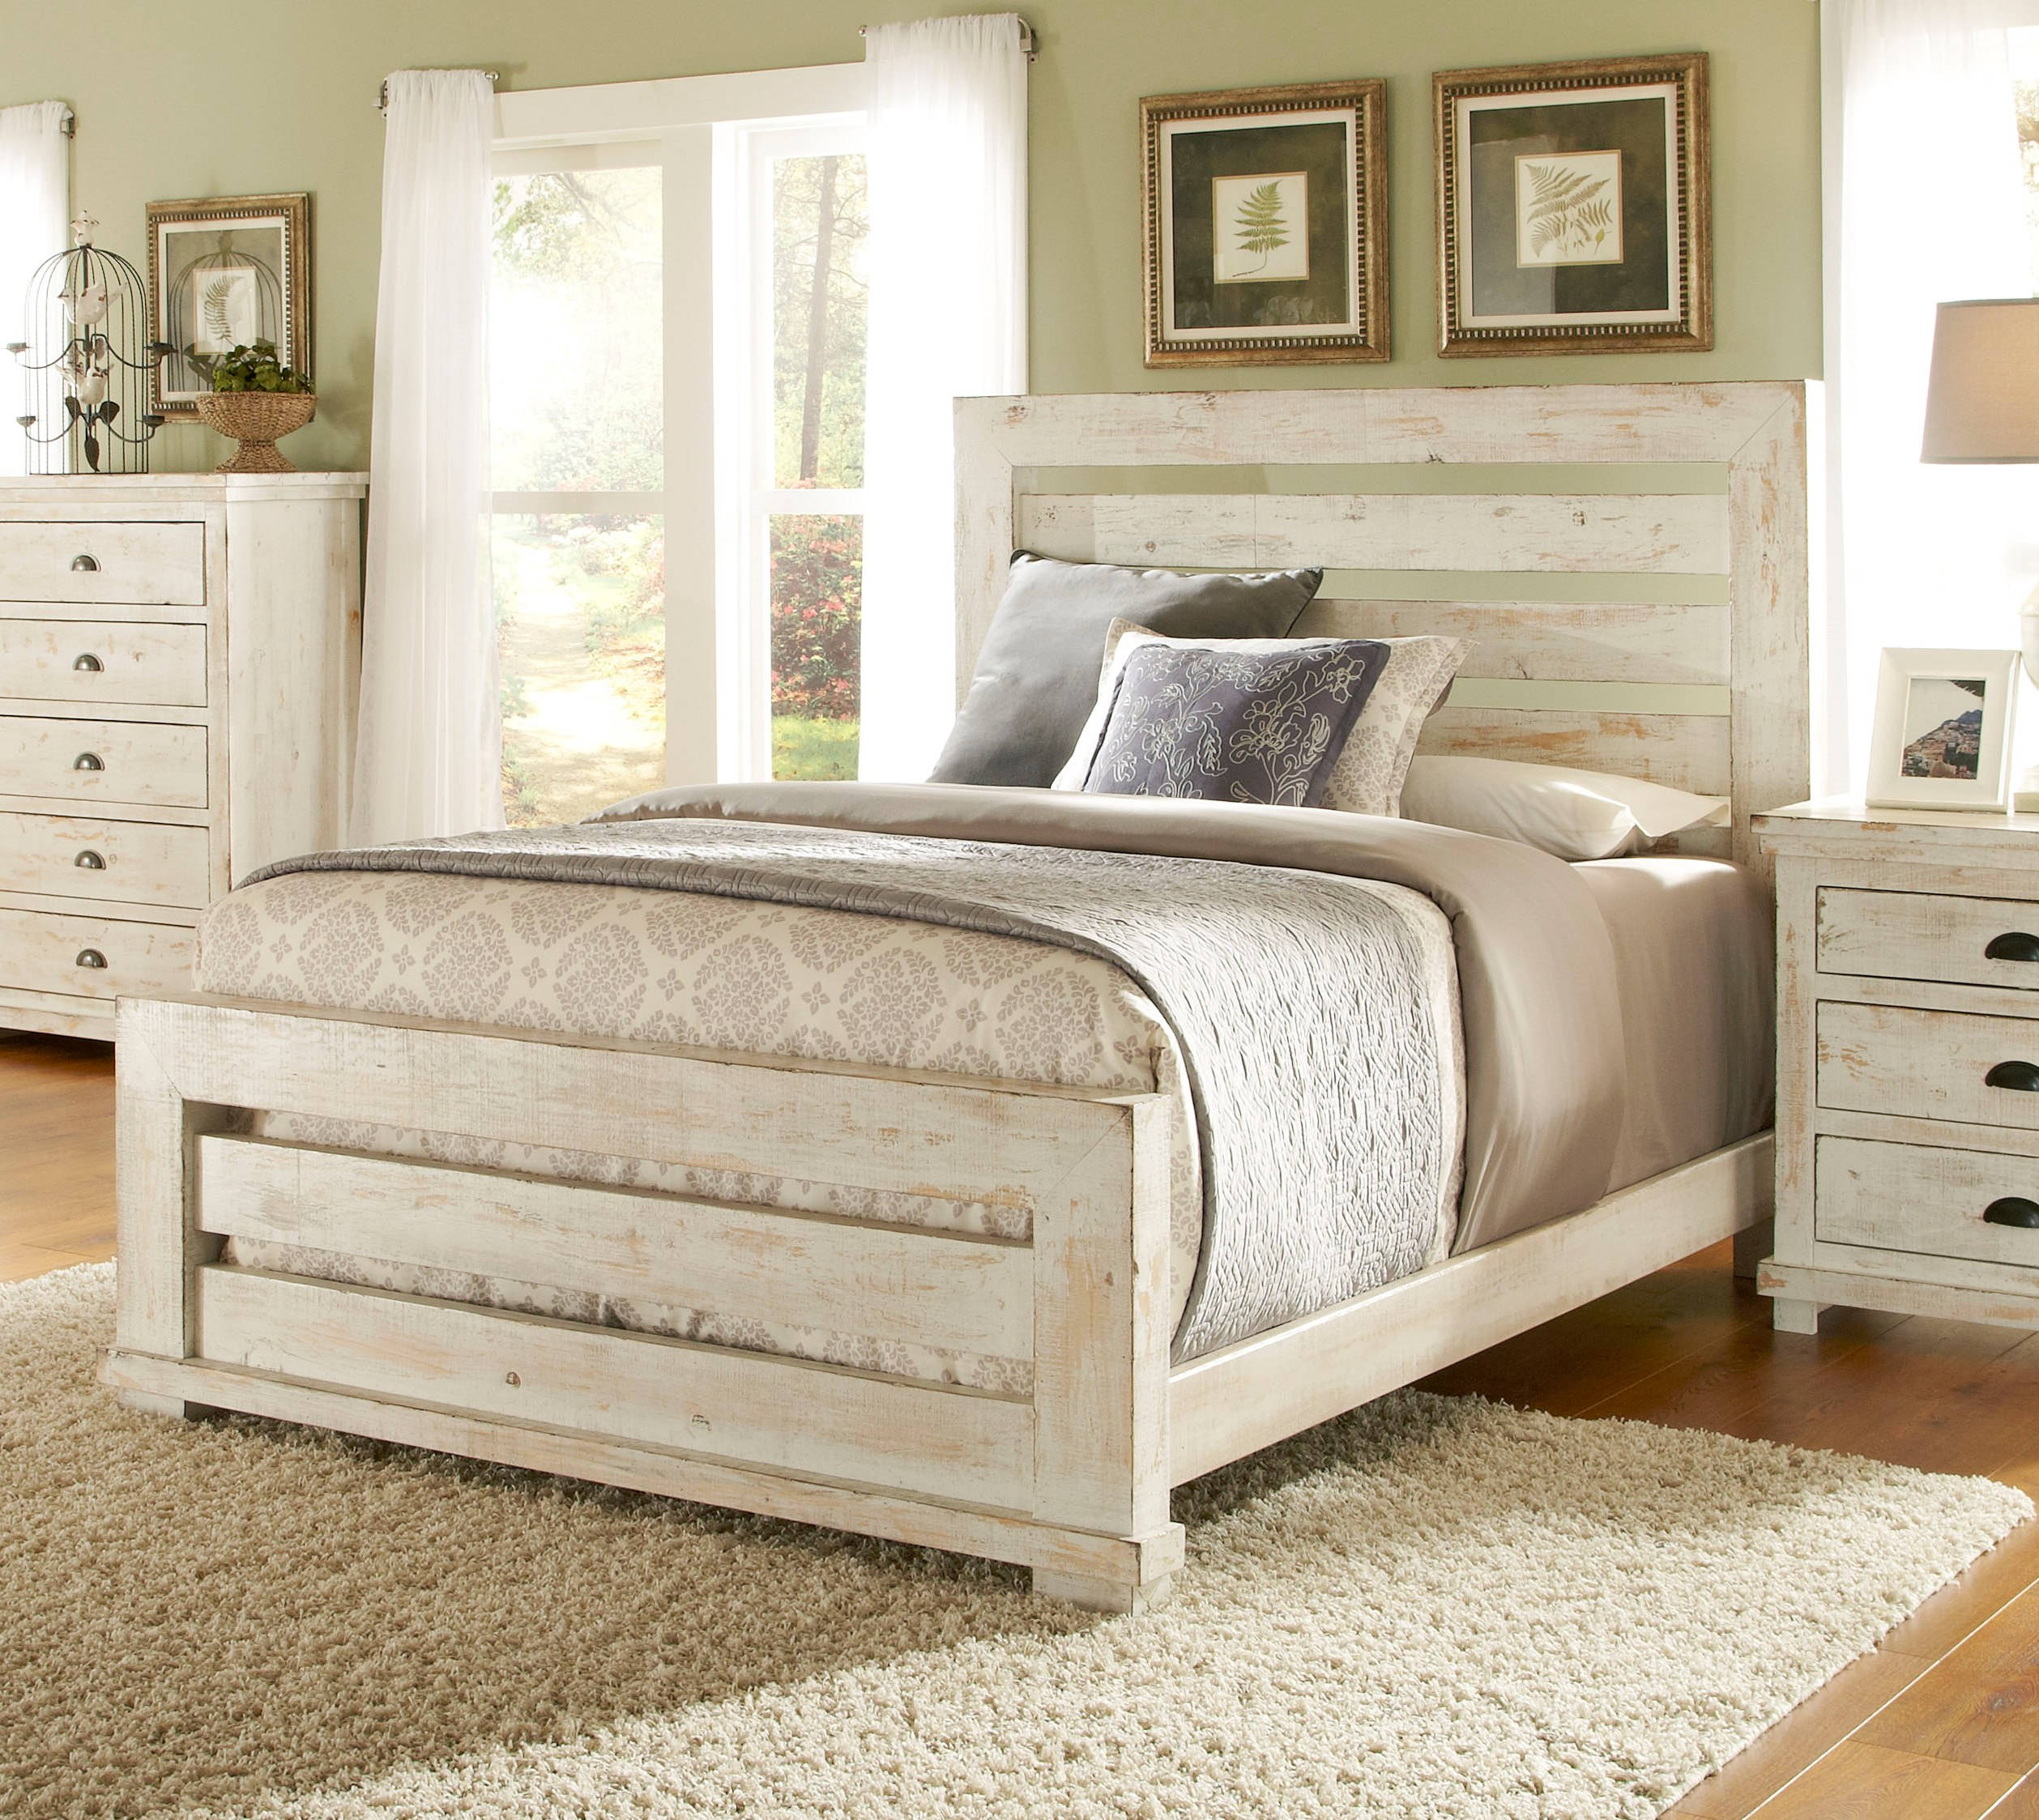 Progressive furniture willow distressed white queen slat bed click to enlarge